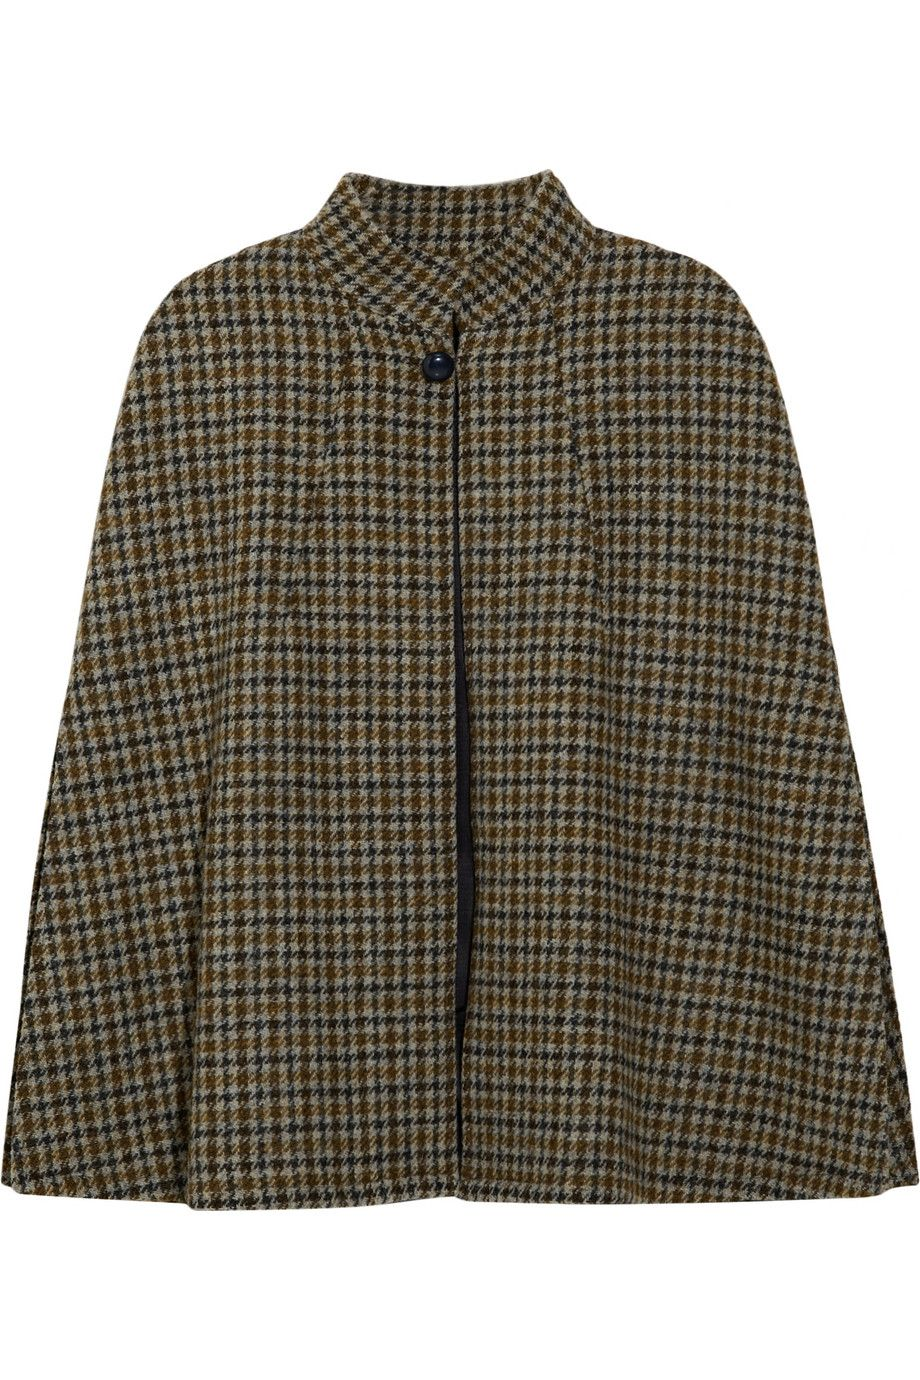 c812639e80e Hand-woven houndstooth wool cape / A.P.C.   wish list   Wool cape ...